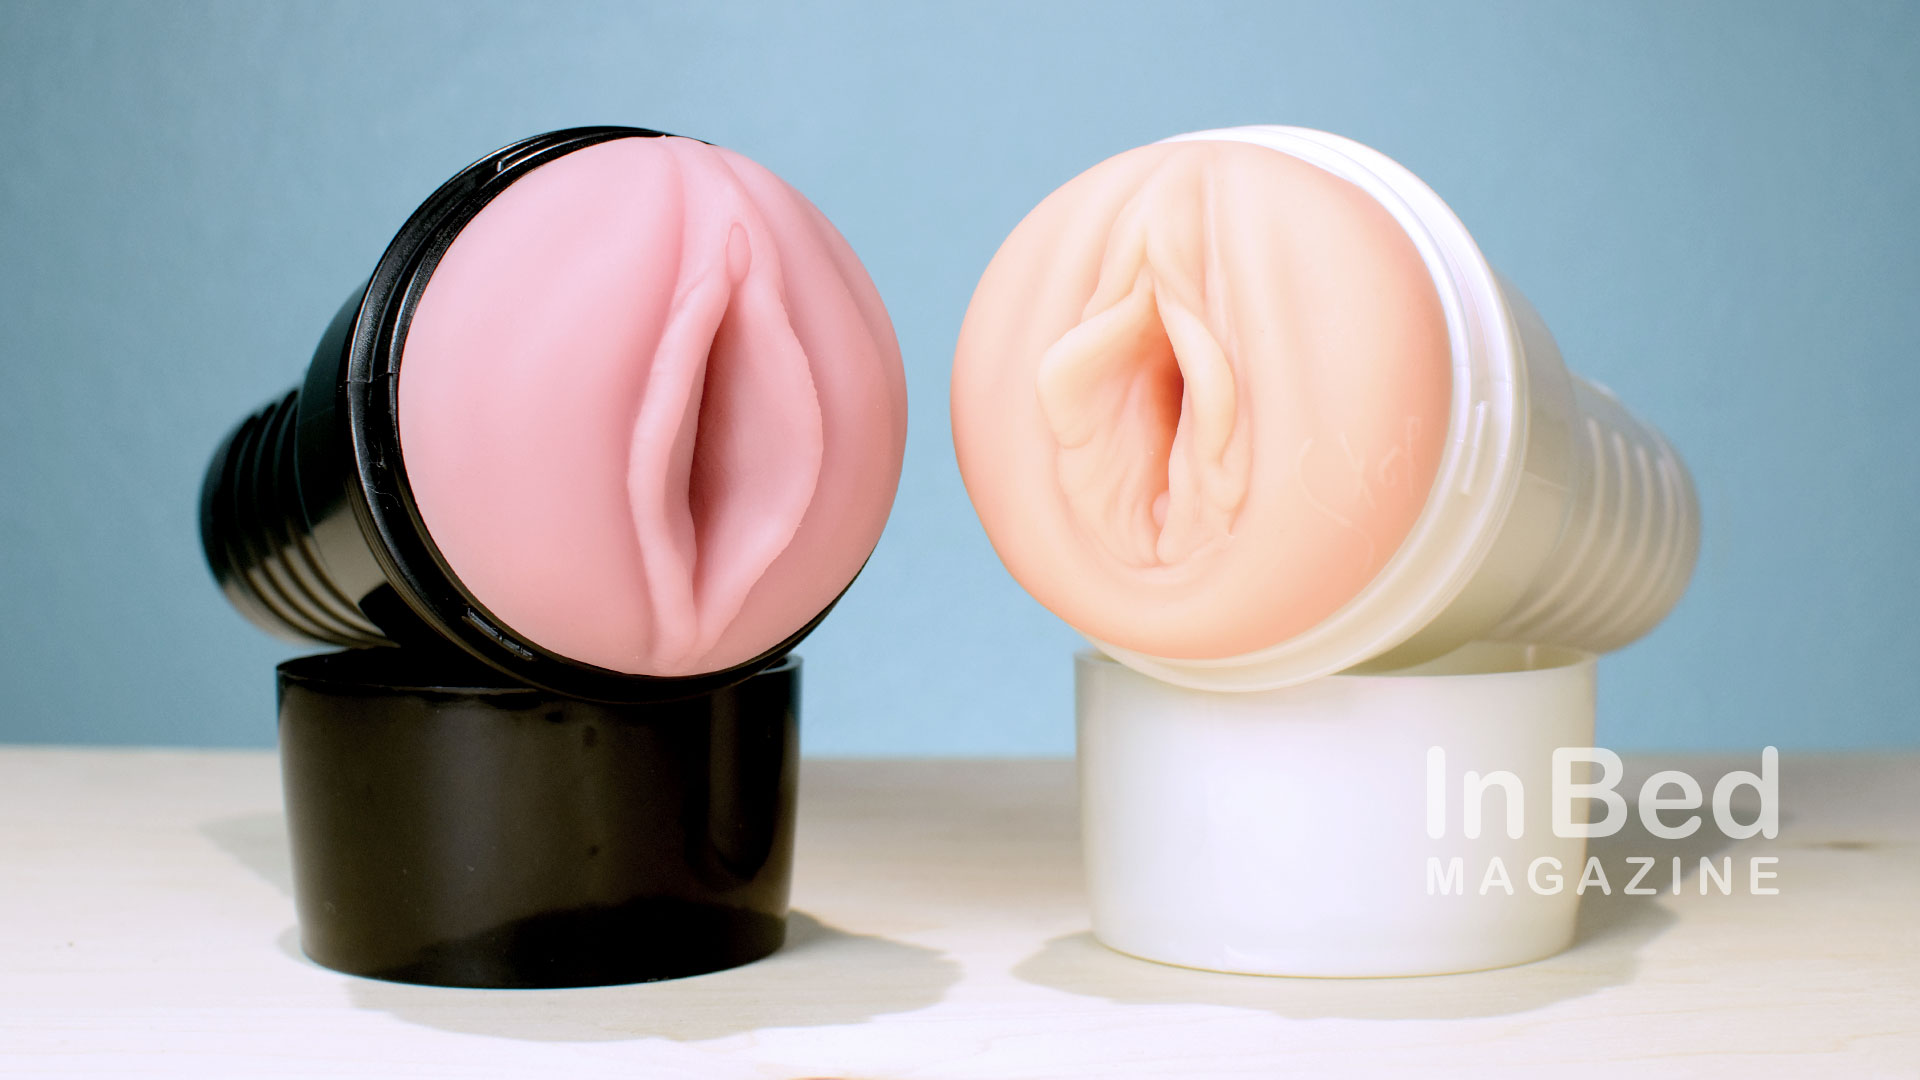 Fleshlight Promotions